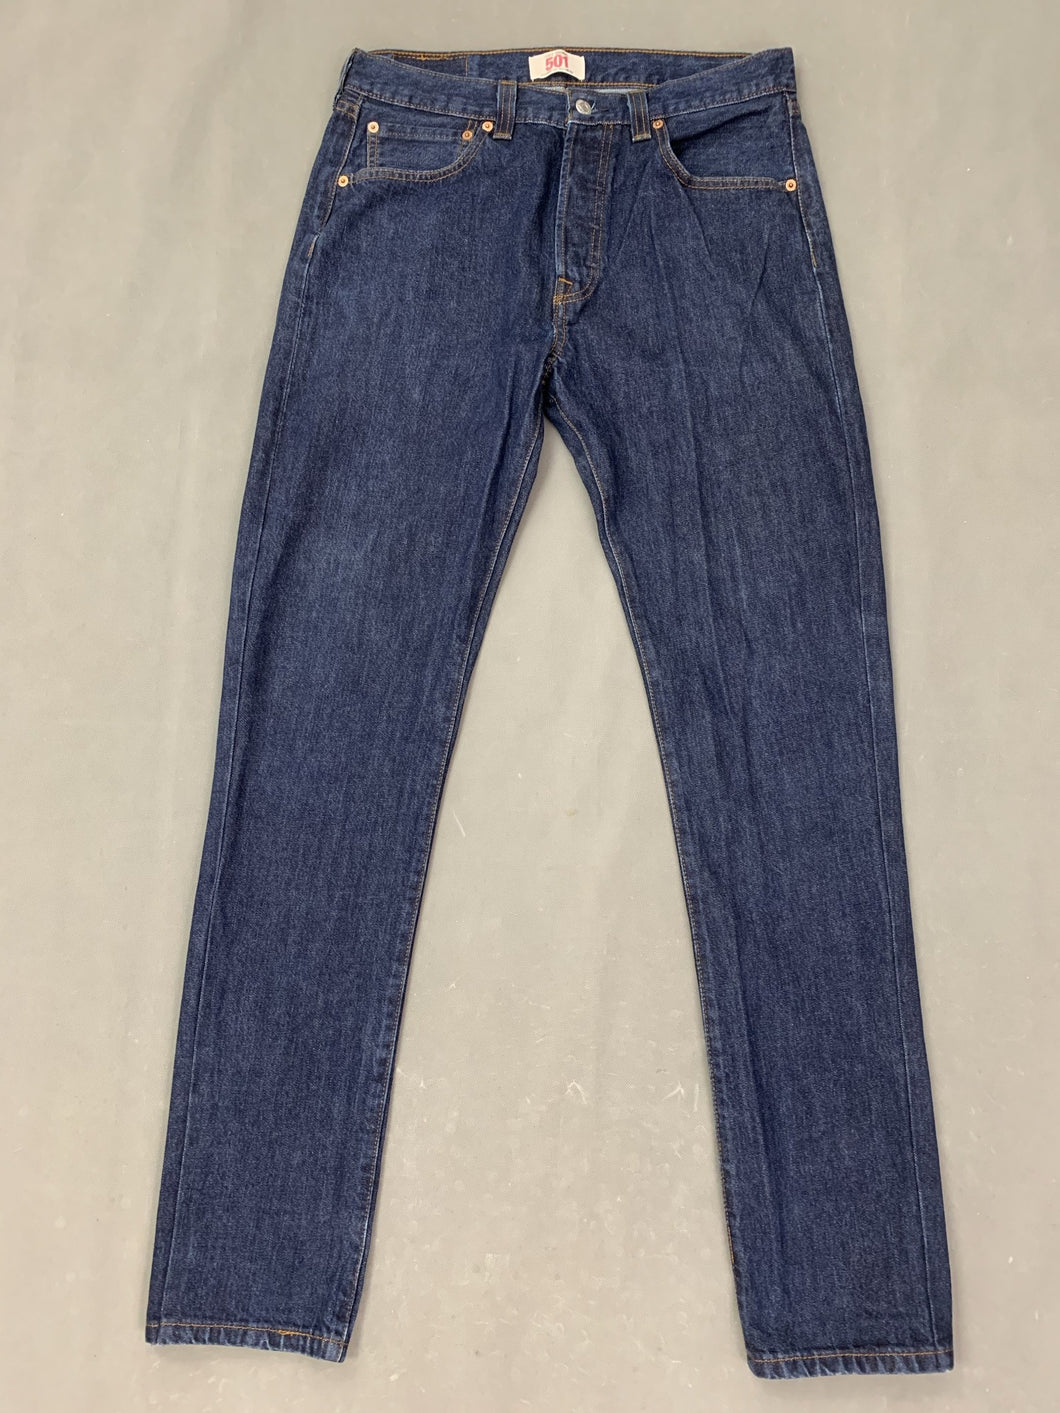 LEVI STRAUSS &Co Mens LEVI'S Blue Denim 501 JEANS Size Waist 32